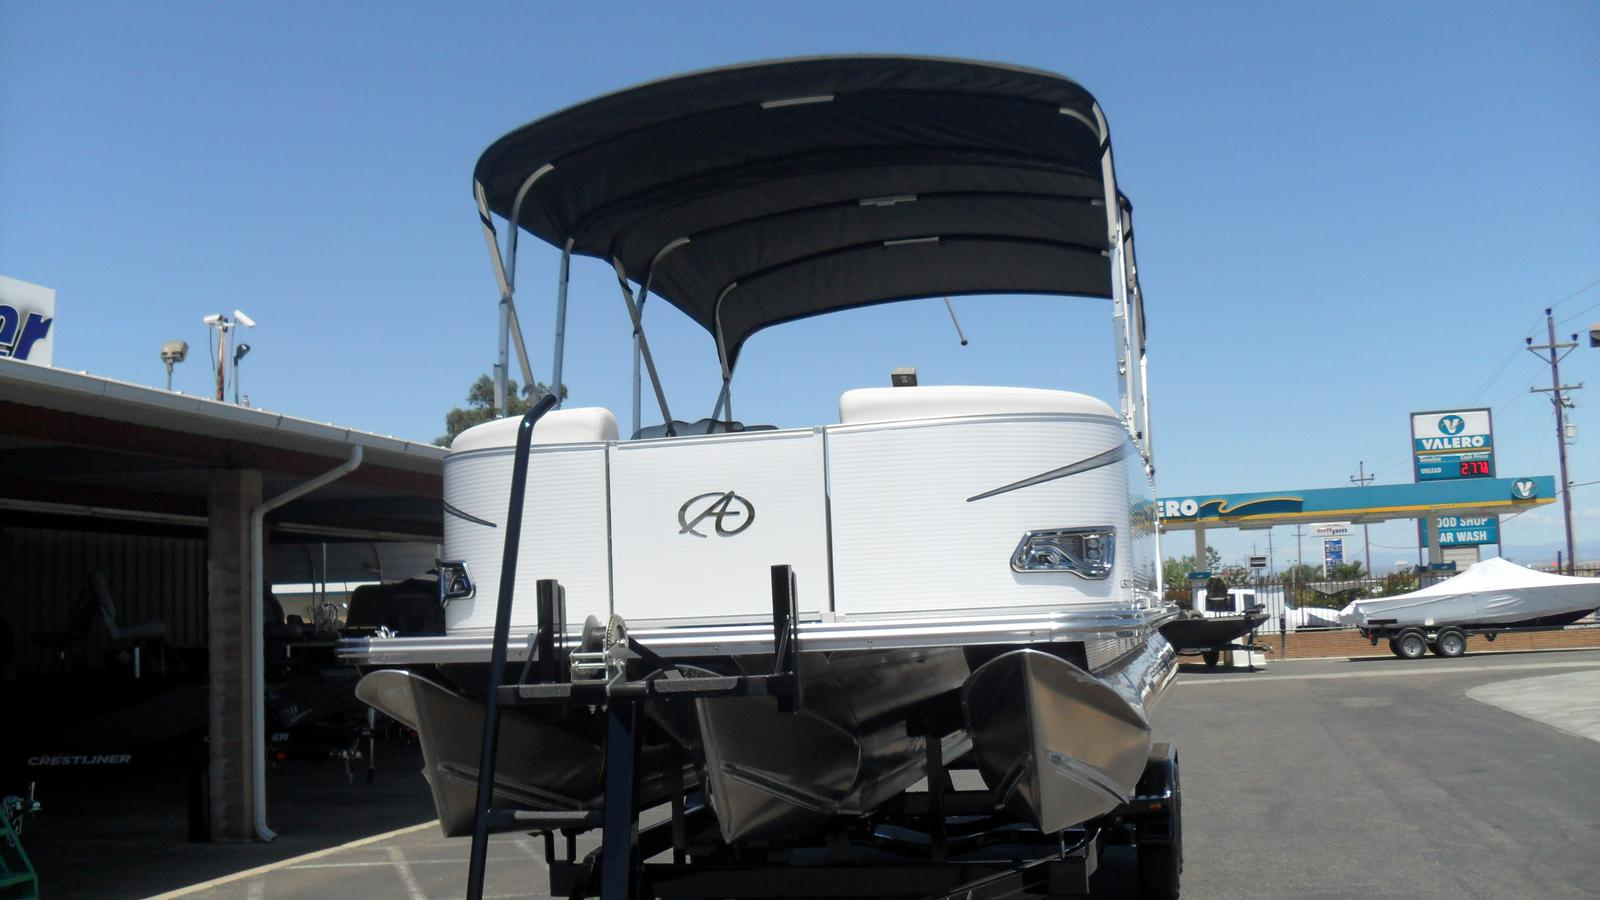 2017 Avalon LSZ Entertainer 24-Mercury 150hp for sale in Madera, CA